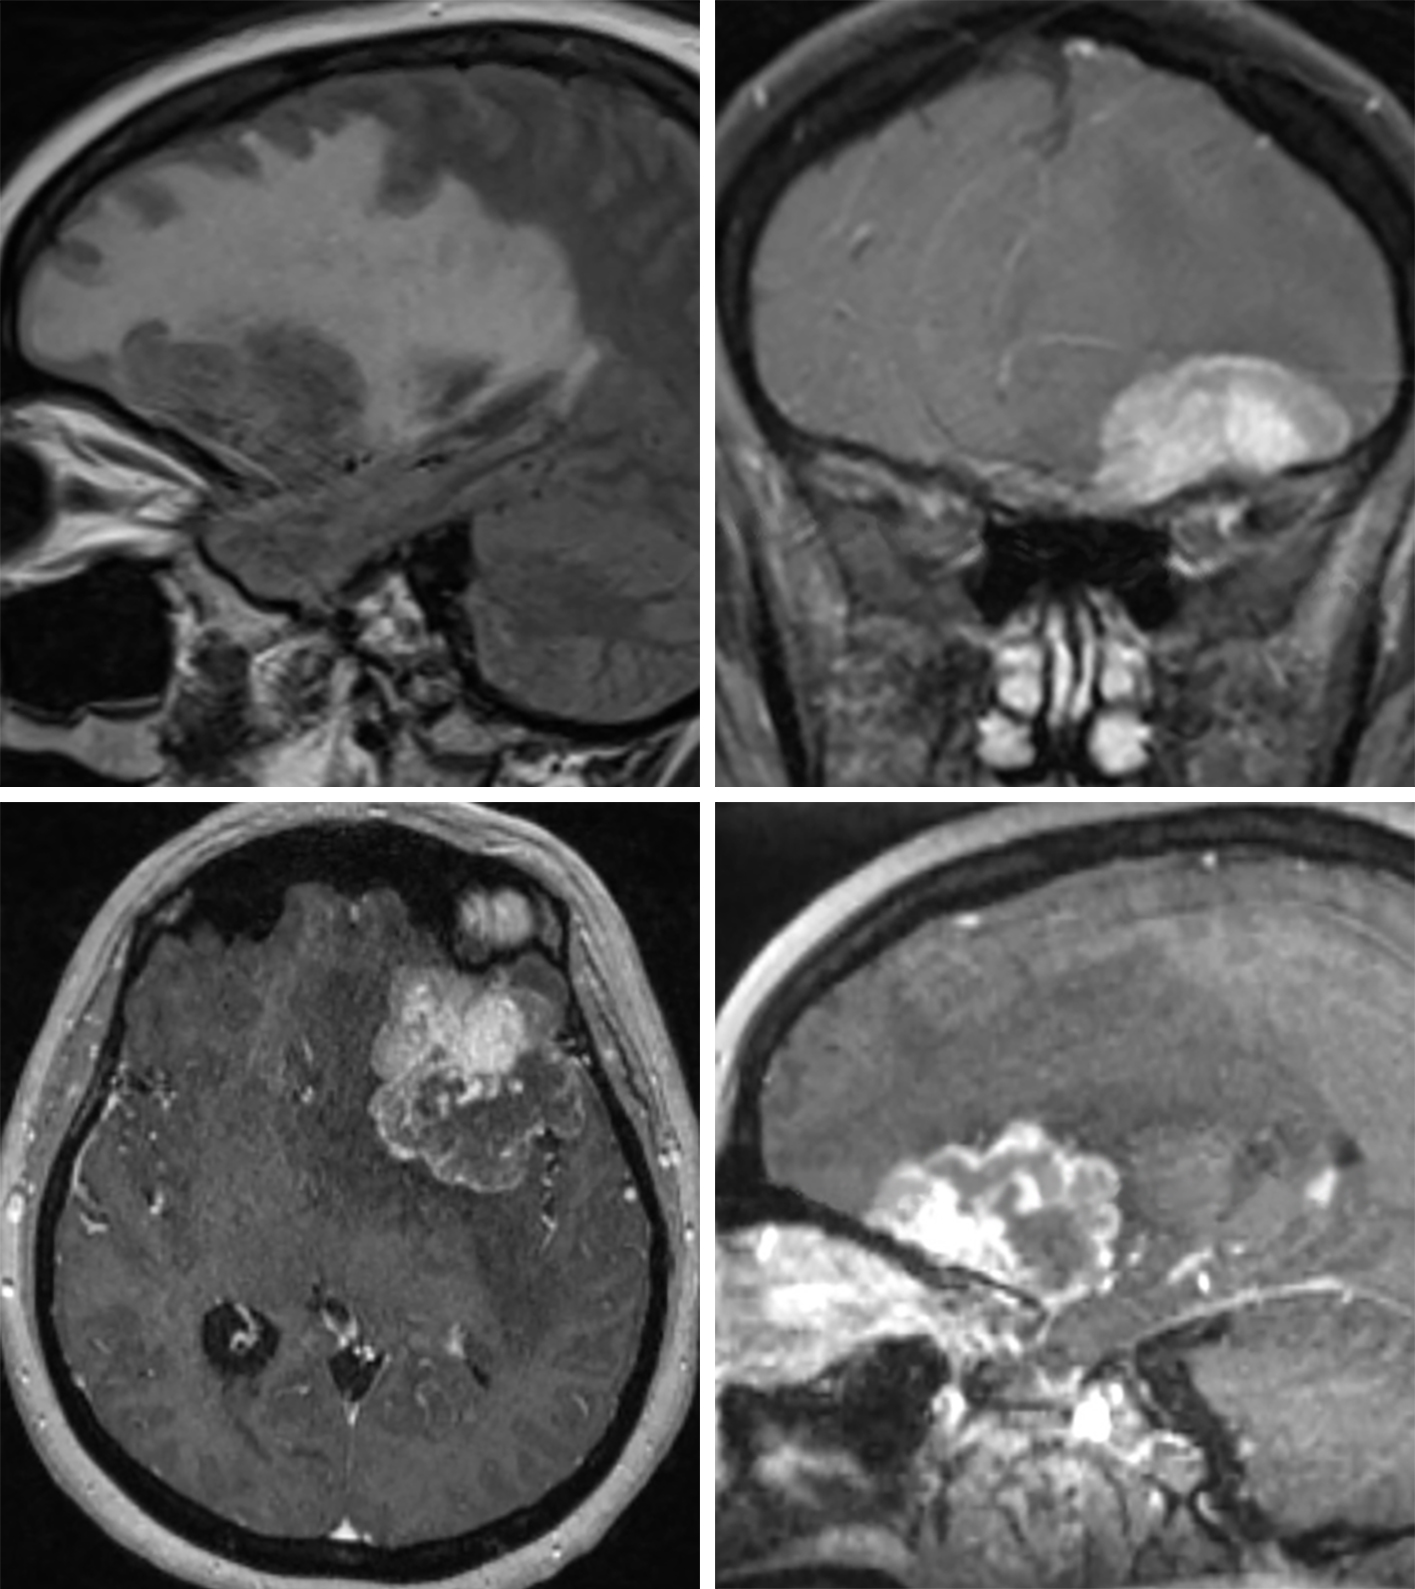 Figure 6: (Top Left) This dura-based metastasis along the inferior aspect of the left frontal lobe is causing a tremendous amount of hyperintense edema on this sagittal FLAIR image. Coronal (top right), axial (bottom left), and sagittal (bottom right) postcontrast T1-weighted images show this lesion to have bright enhancement and a broad dural base, a finding more typically seen with meningioma, a common mimic of metastatic disease.